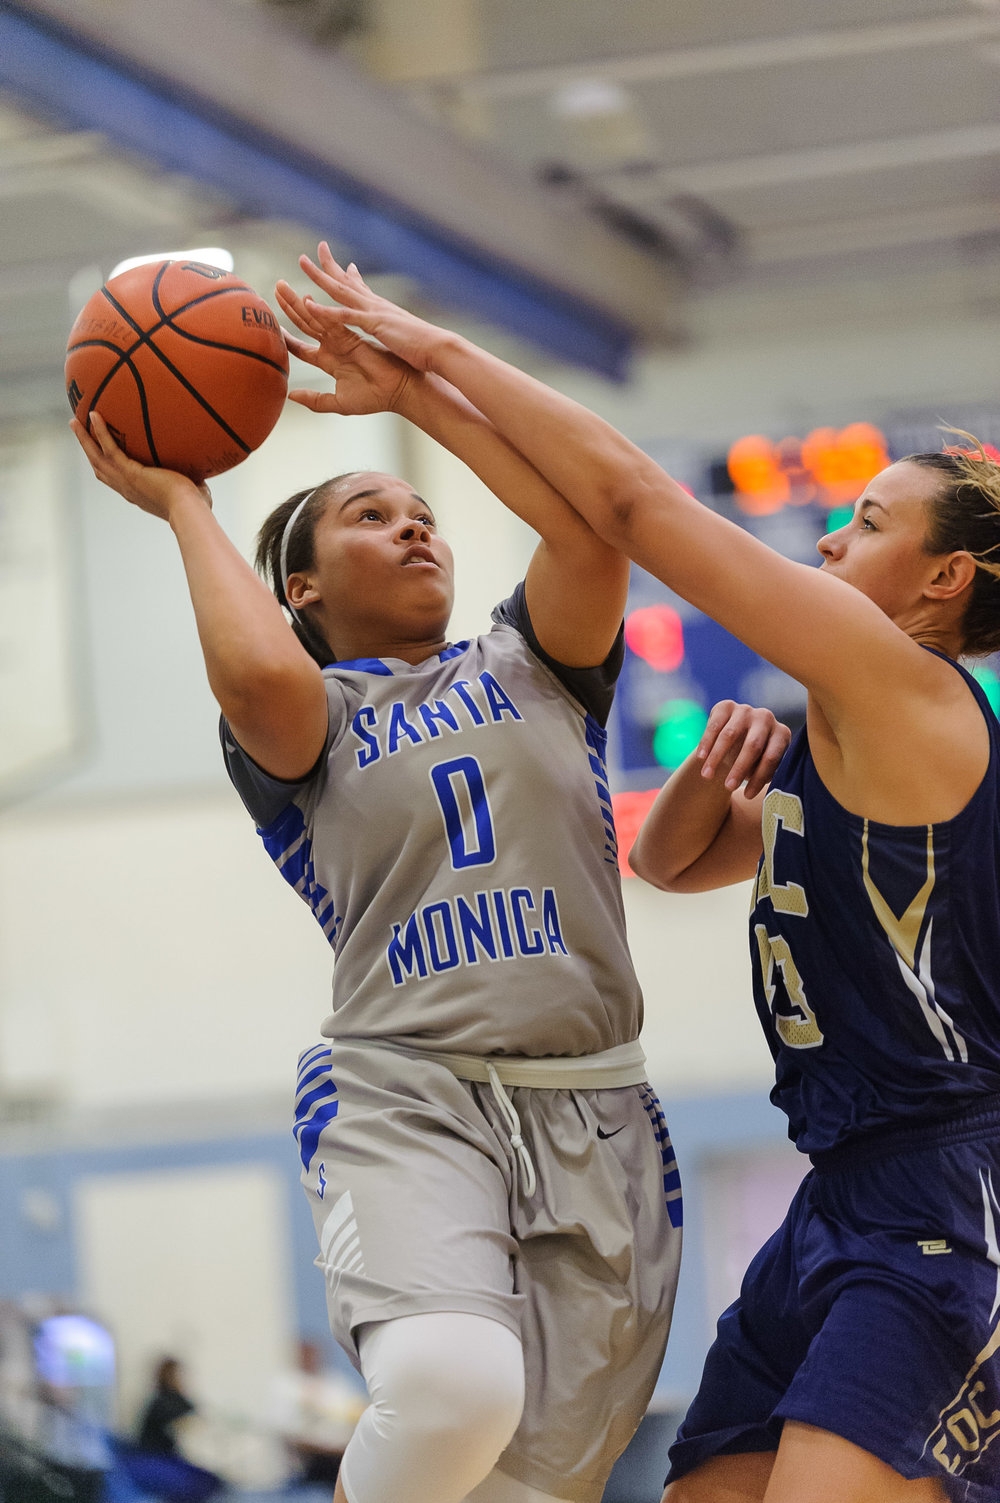 Rejinae Crandell (0,Left) of Santa Monica College goes up for a shot while contested by Kalana Inemer (43,Right) of the Canyons. The Santa Monica College Corsairs lose the game 108-70 to the College of the Canyons Cougars. The game was held at the SMC Pavilion at the Santa Monica College Main Campus in Santa Monica, Calif.. February 10, 2018. (Photo by: Justin Han/Corsair Staff)